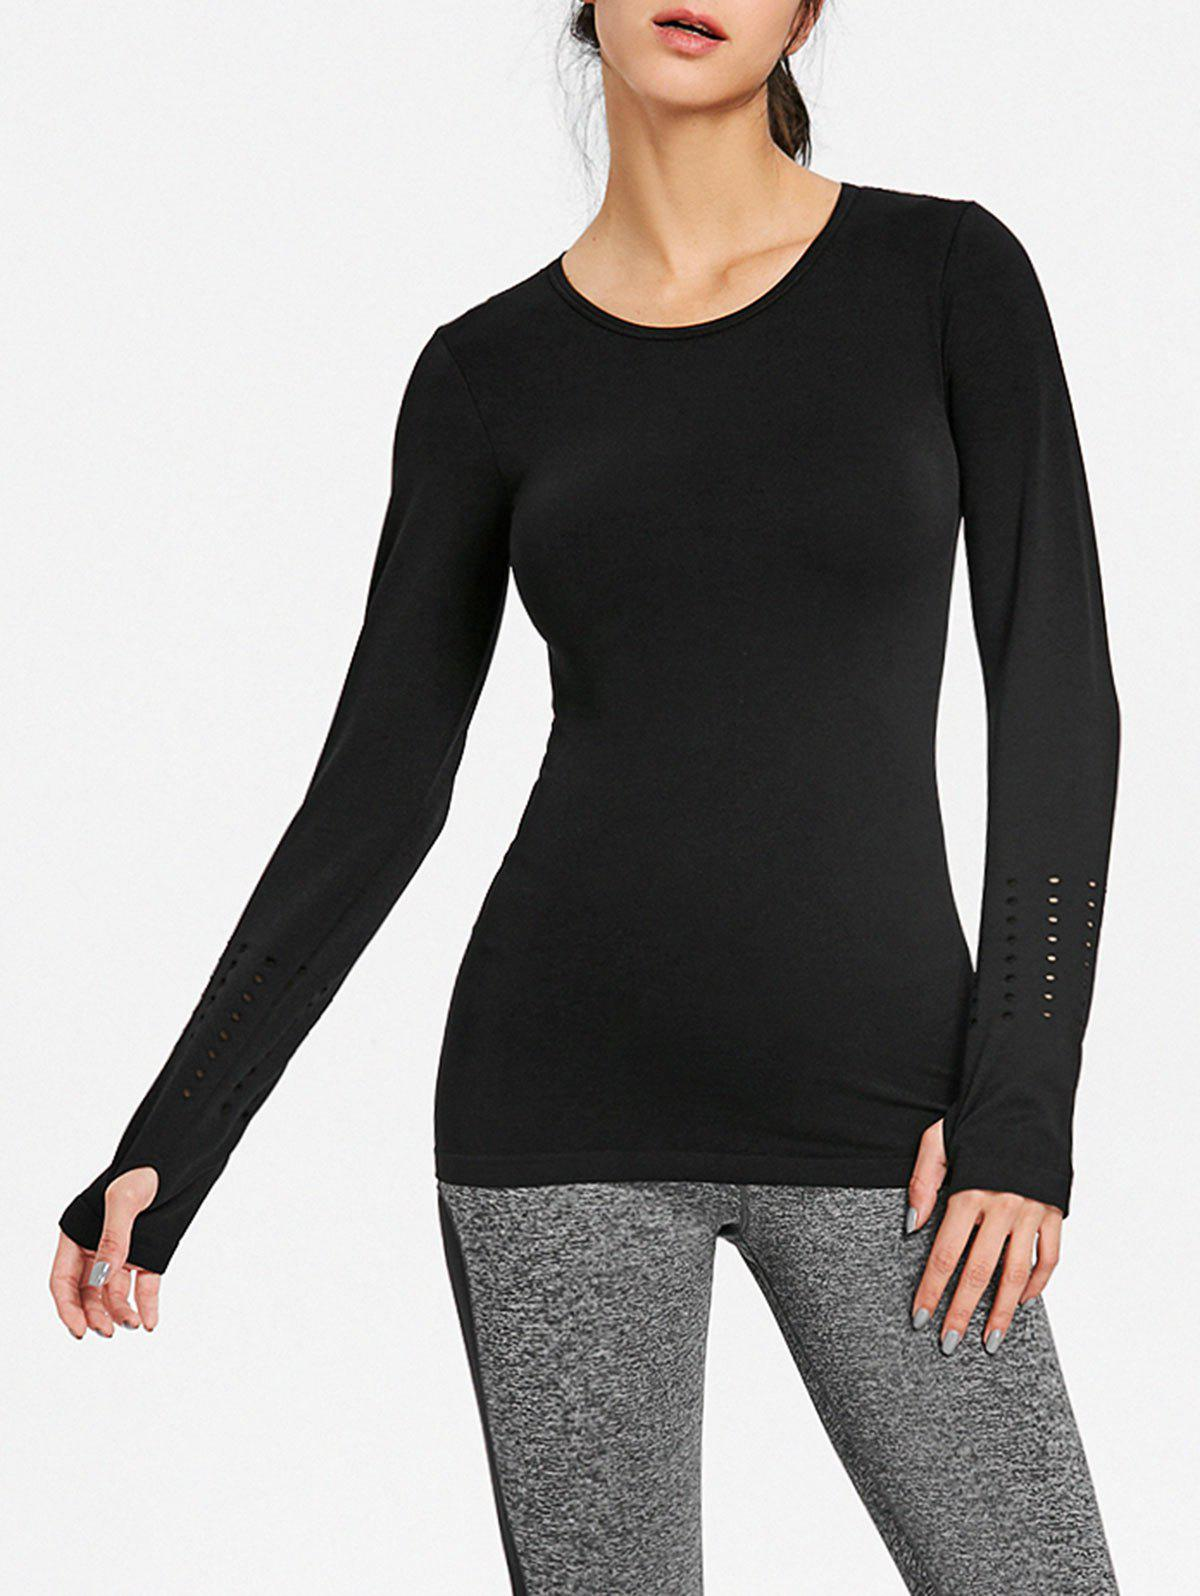 Affordable Breathable Skinny Sports Long Sleeve T-shirt